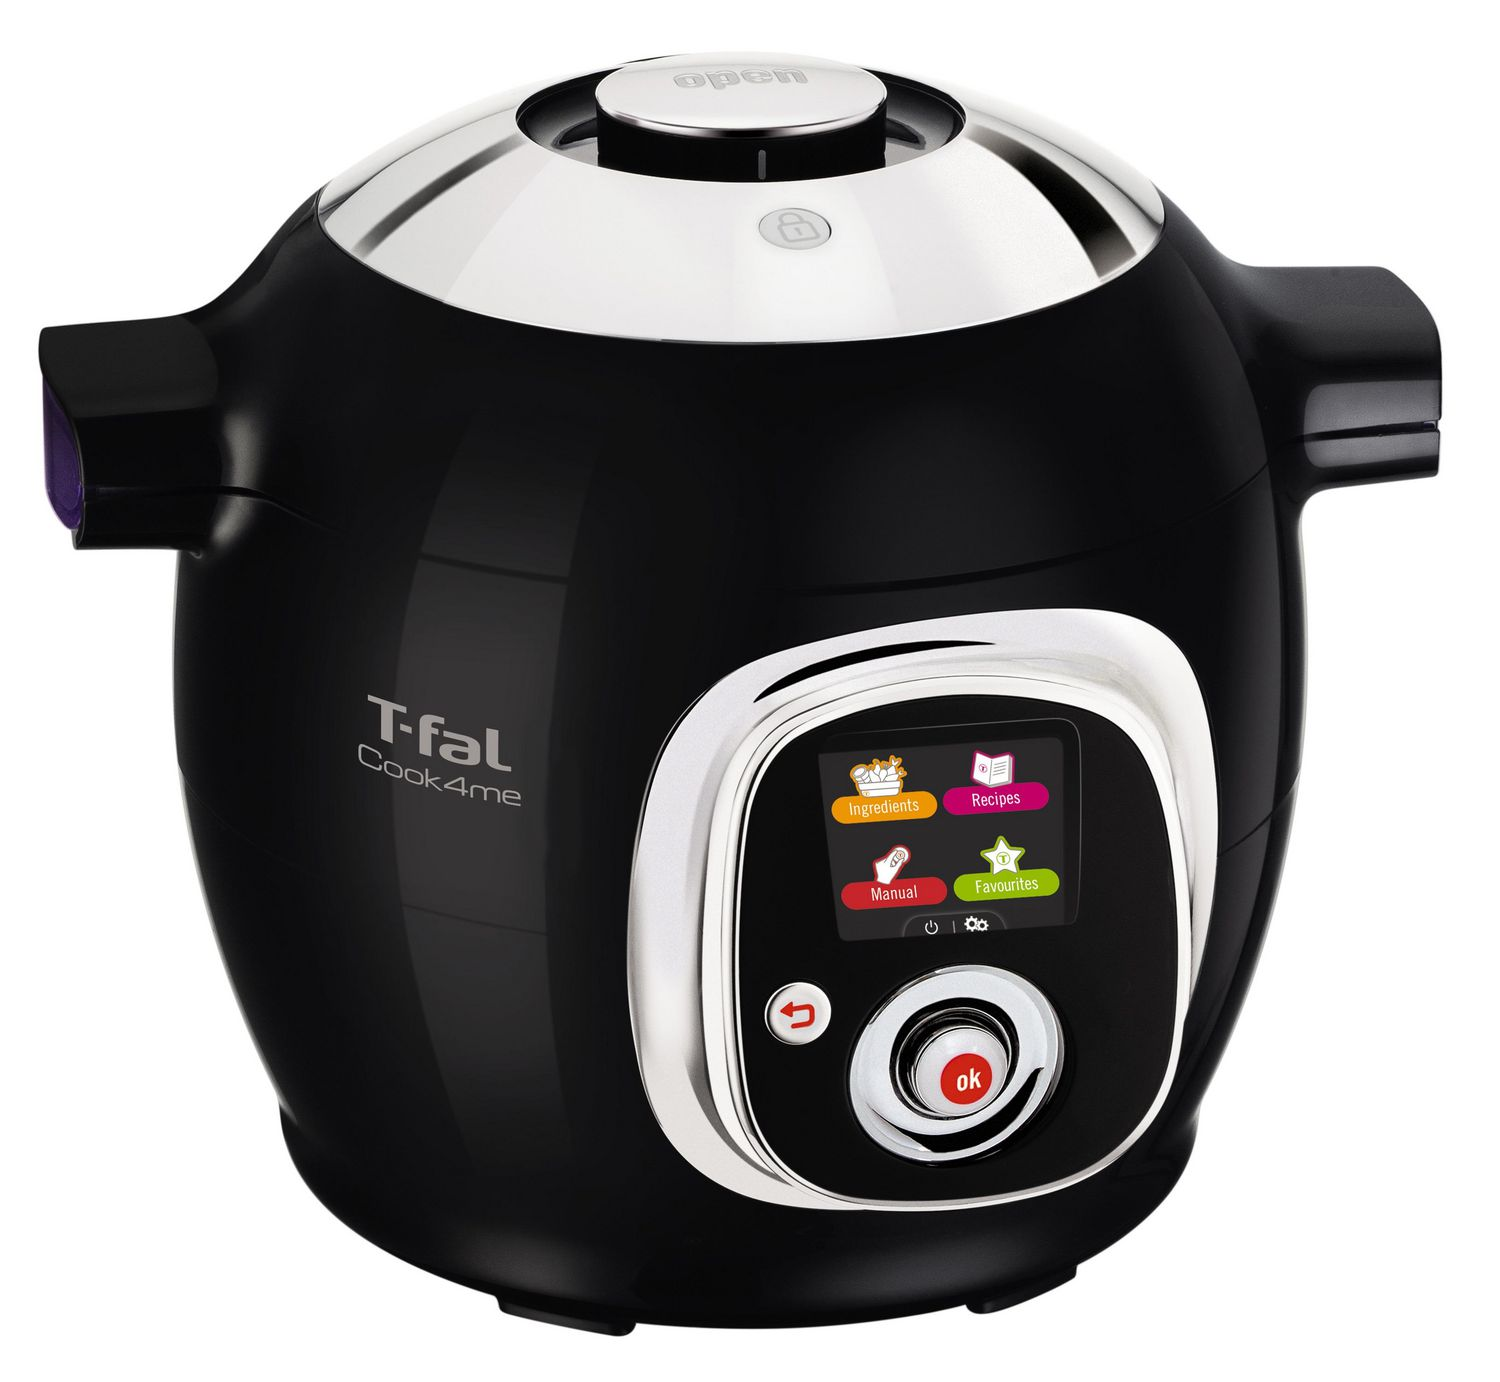 T Fal Cook4me All In One Multicooker Walmart Canada